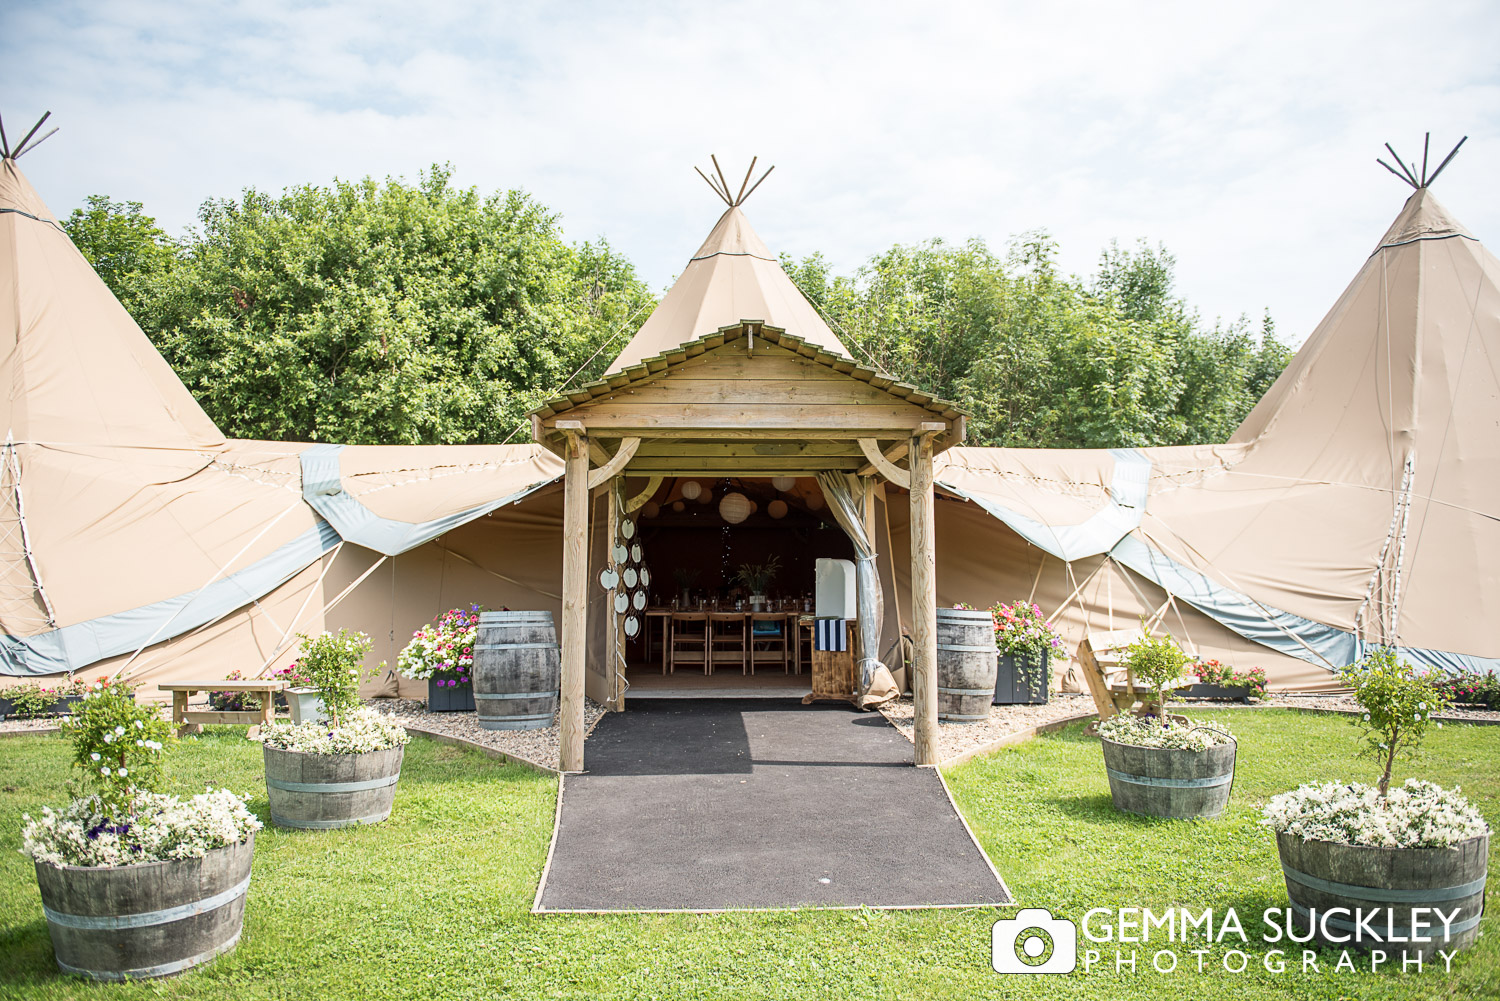 tipi at Oaklands in Driffield